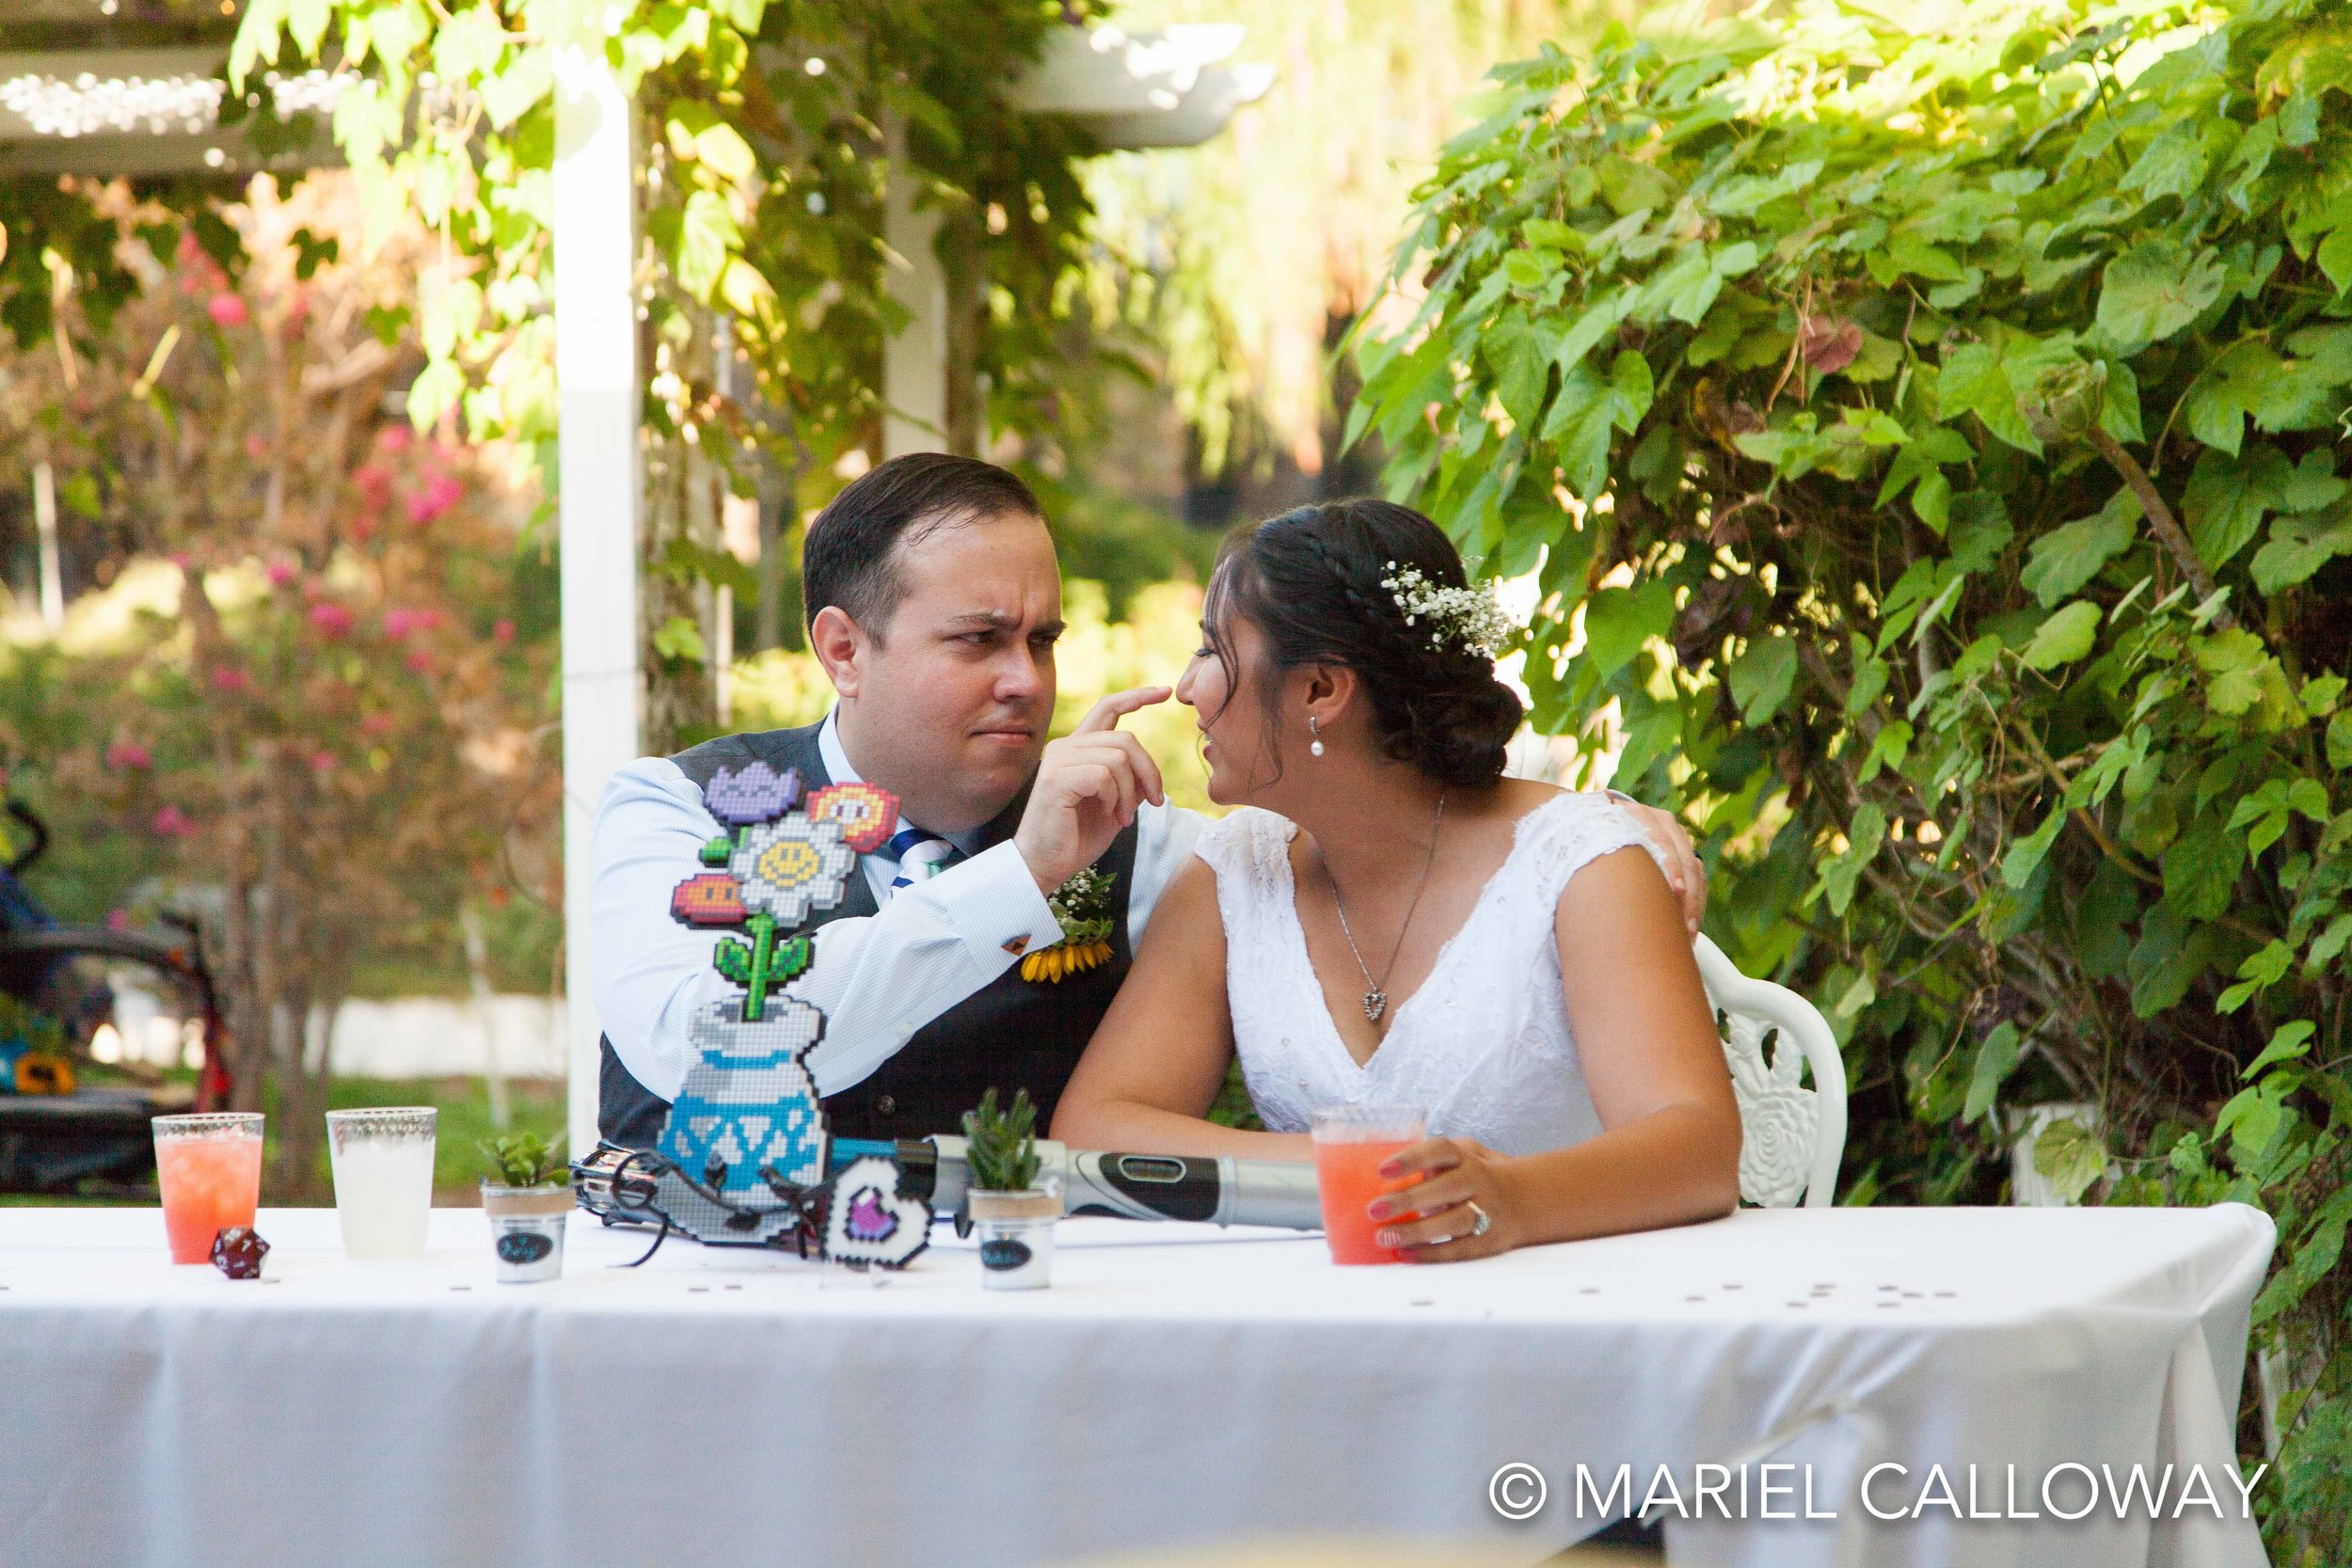 Mariel-Calloway-Wedding-Photographer-Los-Angeles-NatRory-24.jpg